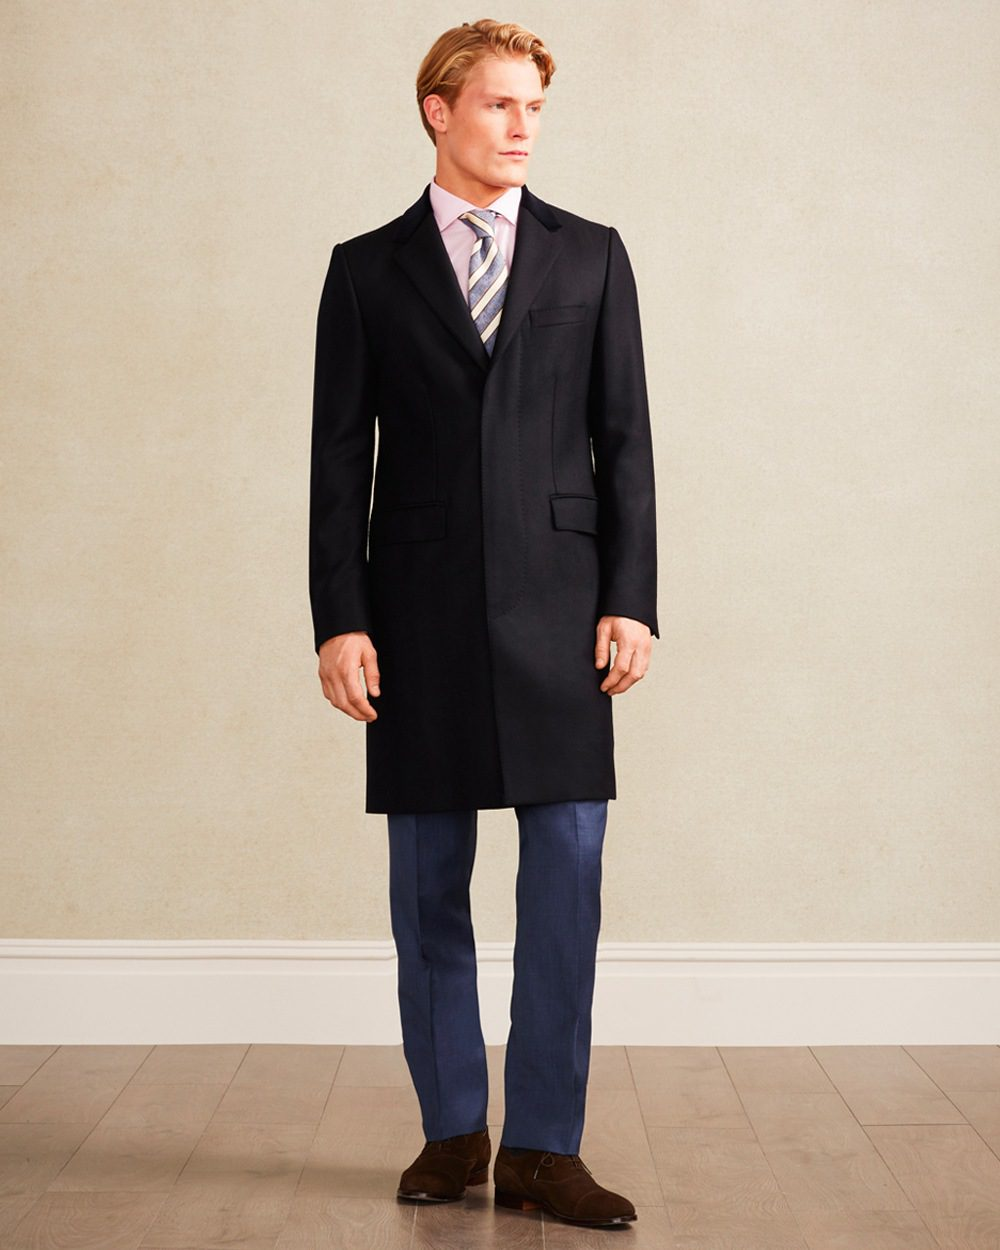 Daily Defence: Top 5 Overcoat Styles For Men